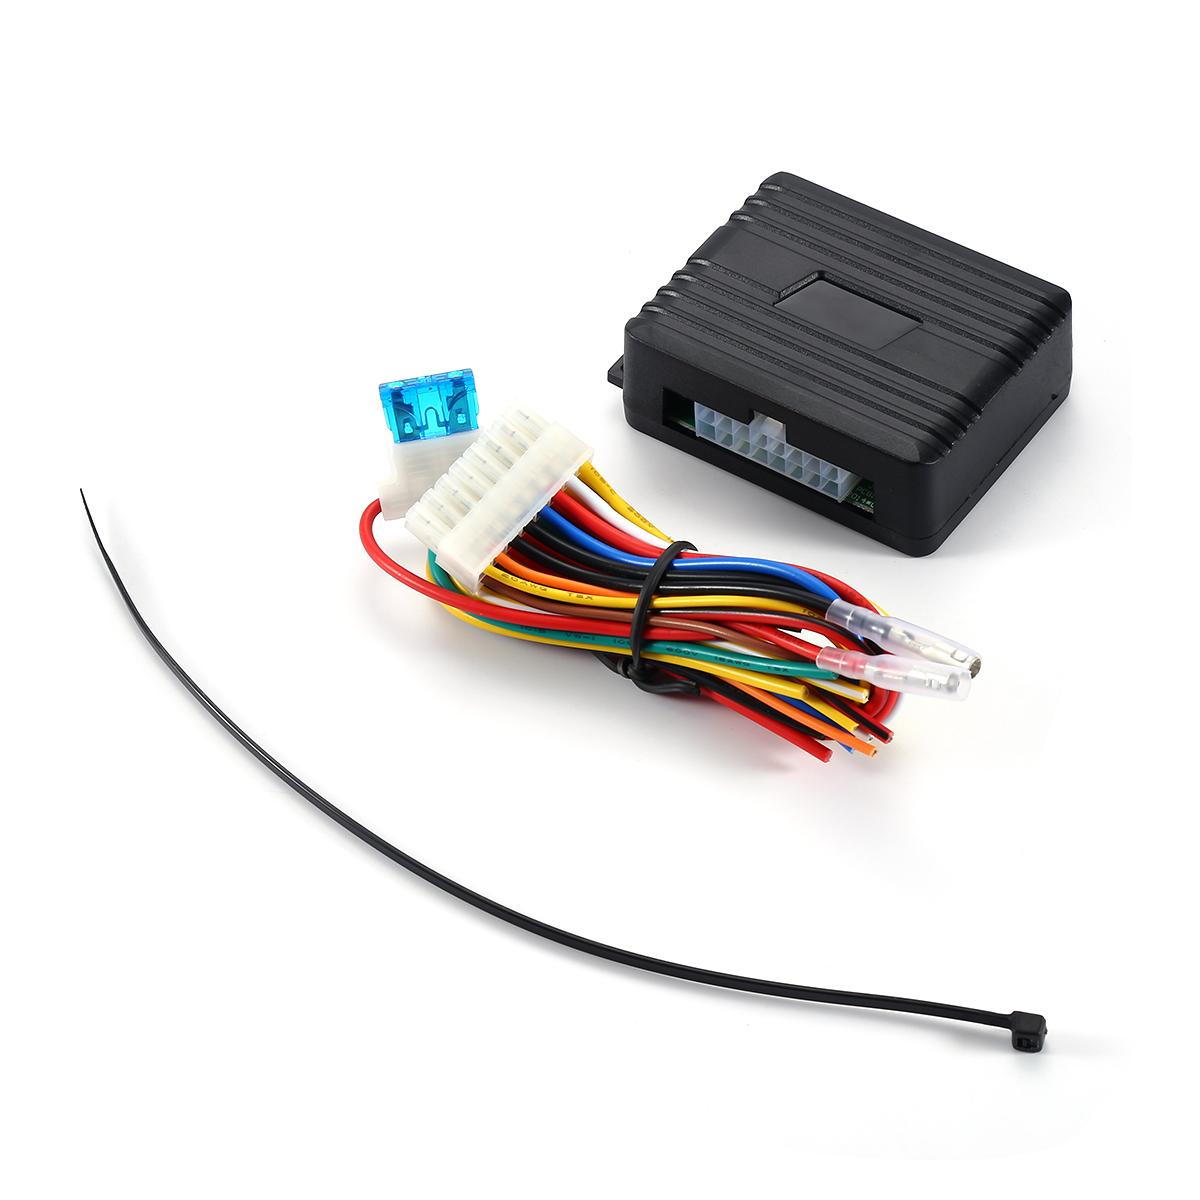 2018 Protector Car Universal Electric Power Window Closer Module 4 Wire Harness 1 User Manual